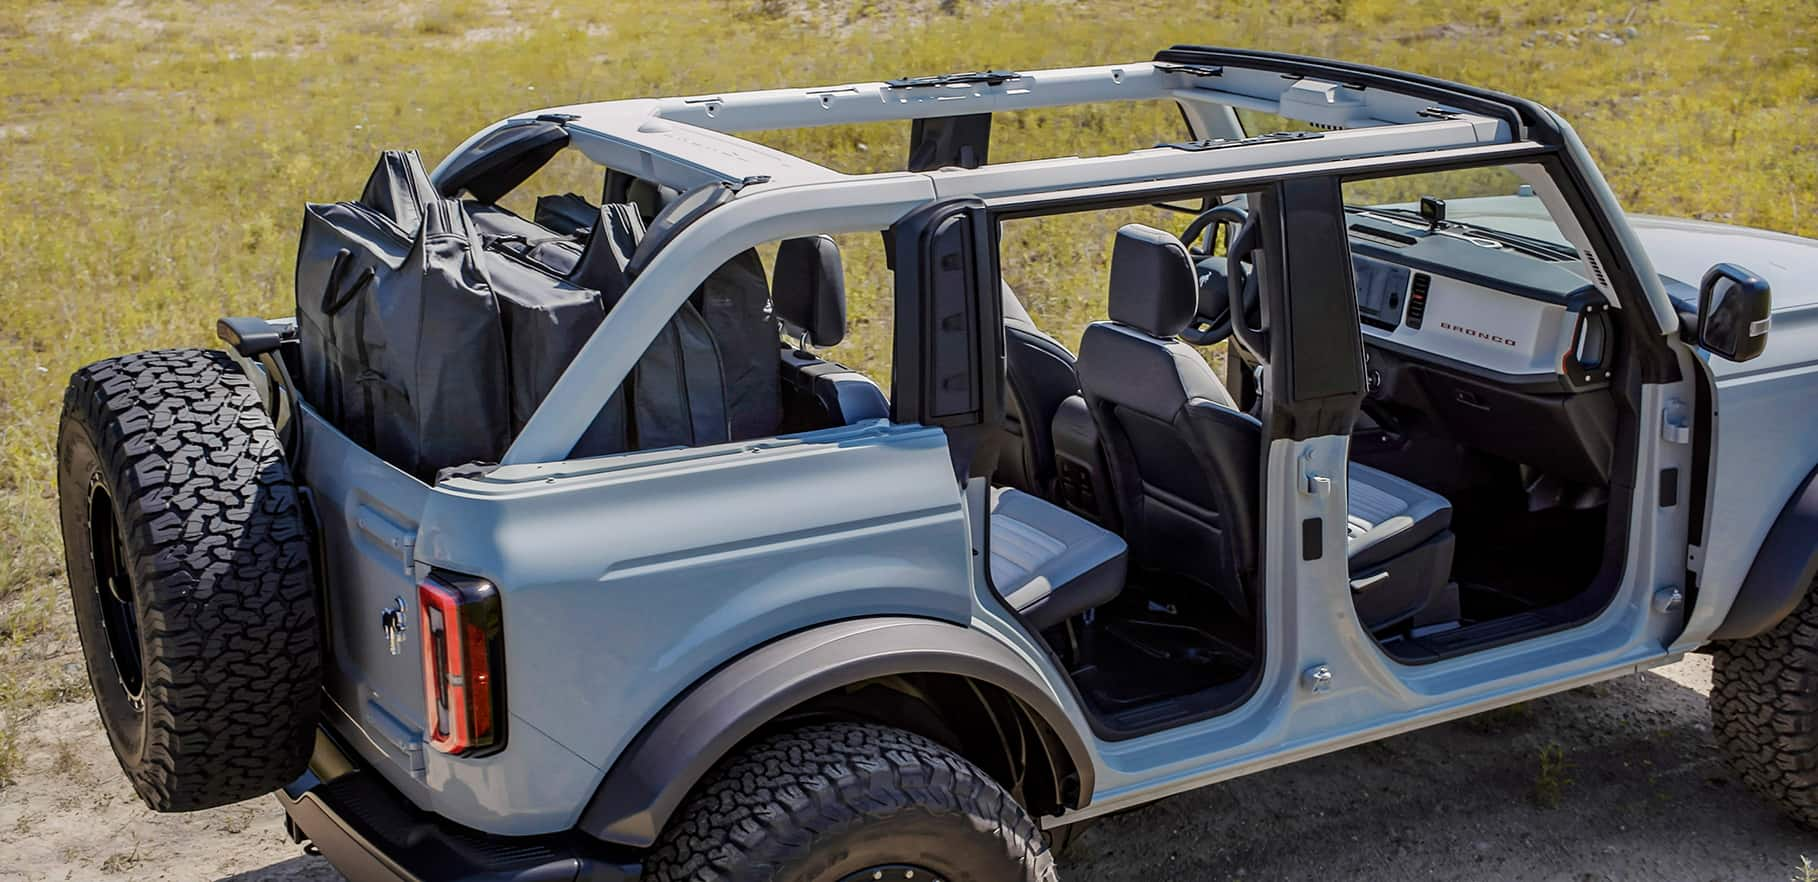 2021 4 door Bronco doors inside